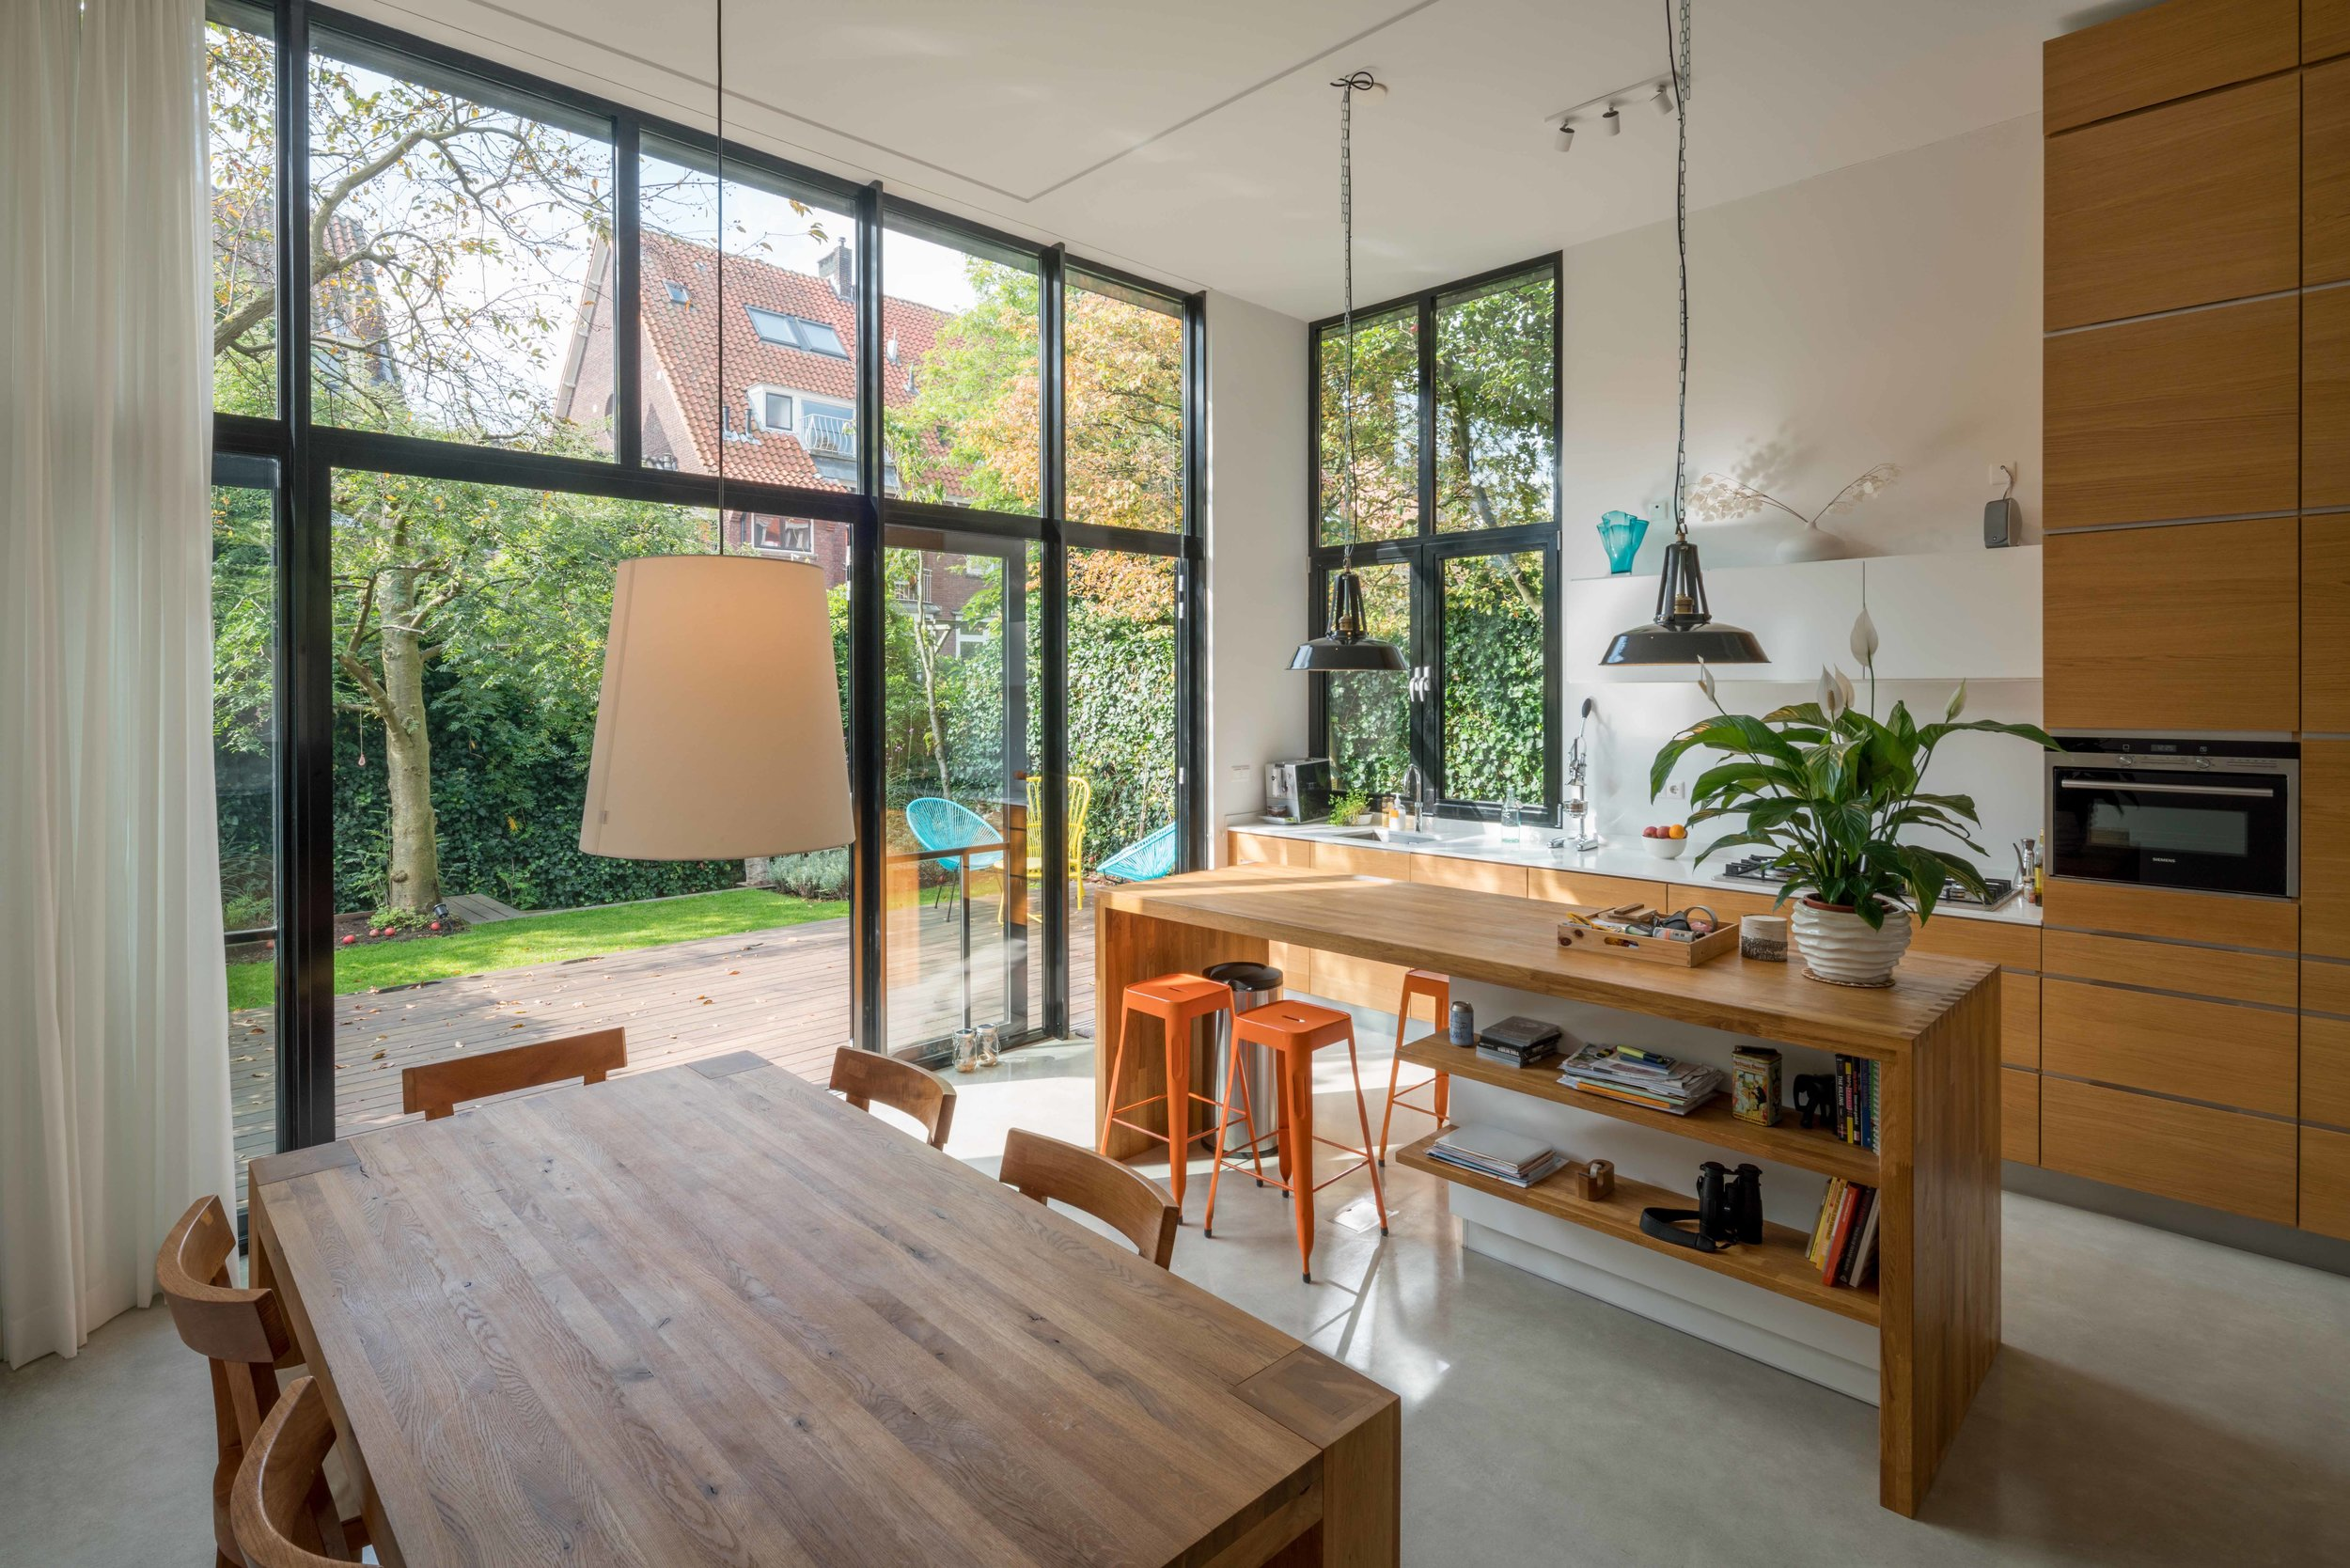 three levels connected   transformation and extension of an early 20th century house into a light and spacious family home